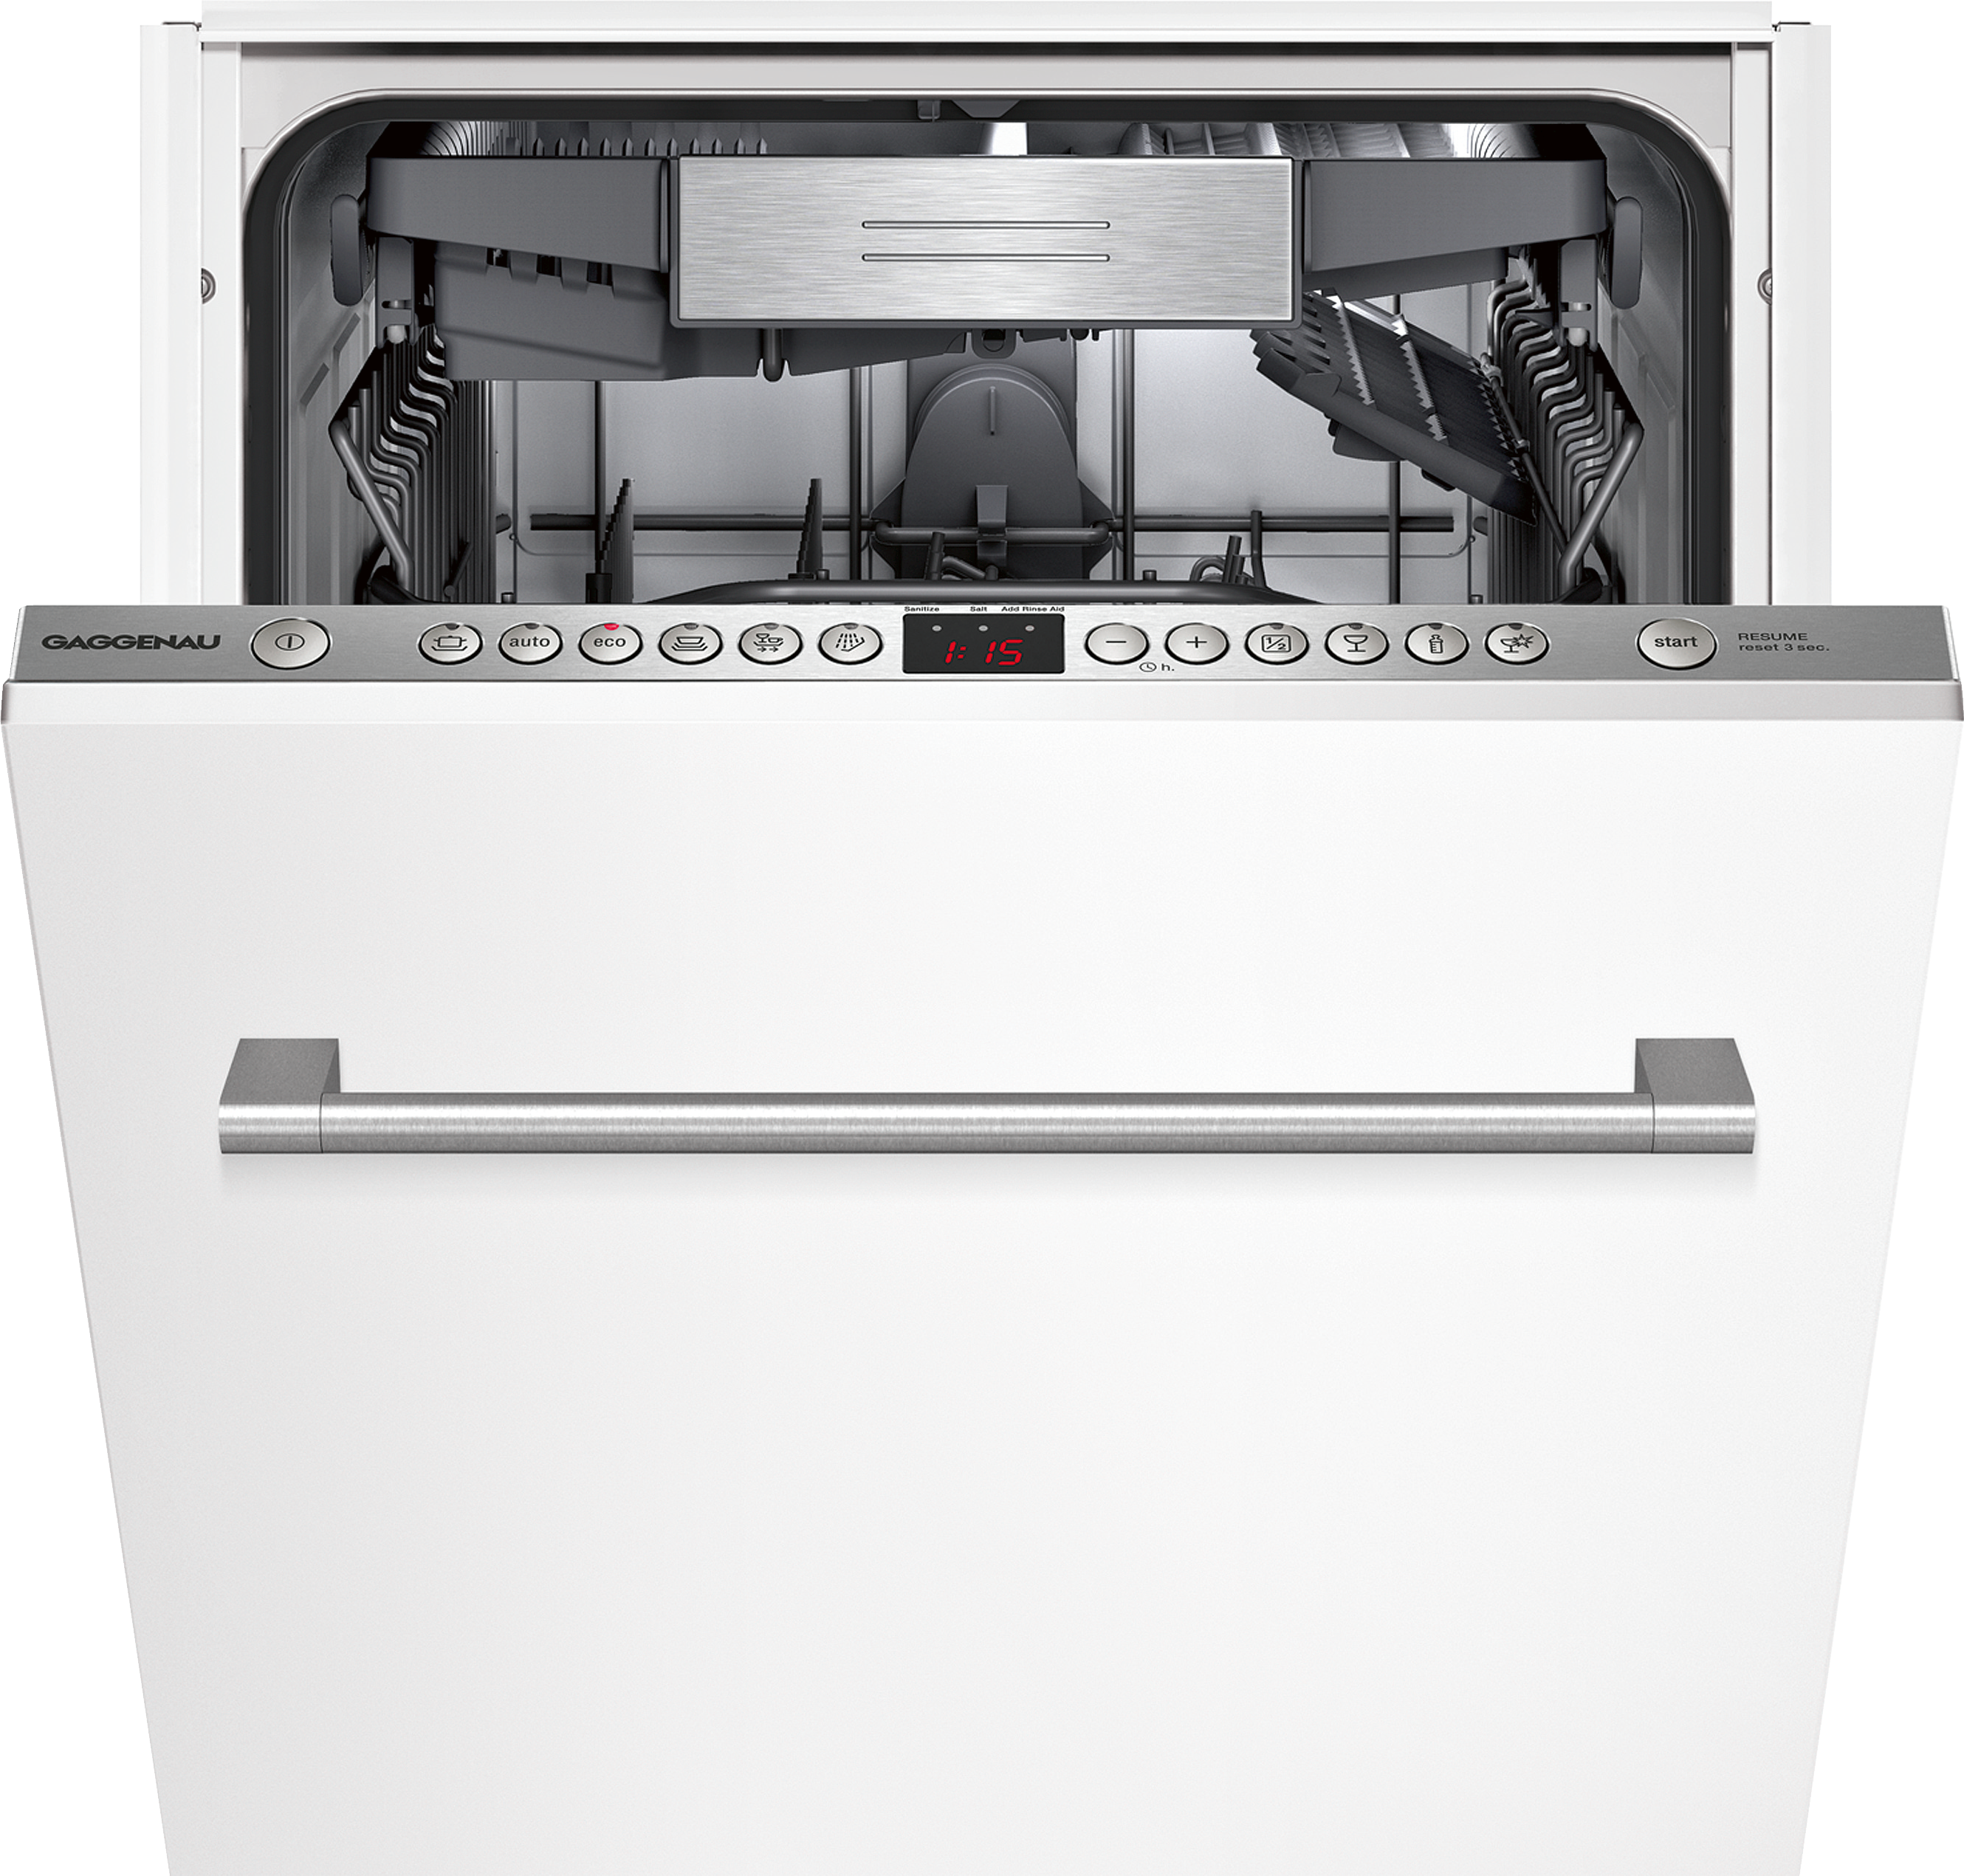 ft dishwasher panasonic countertops pdx cuft chef microwave appliances cu wayfair countertop magic